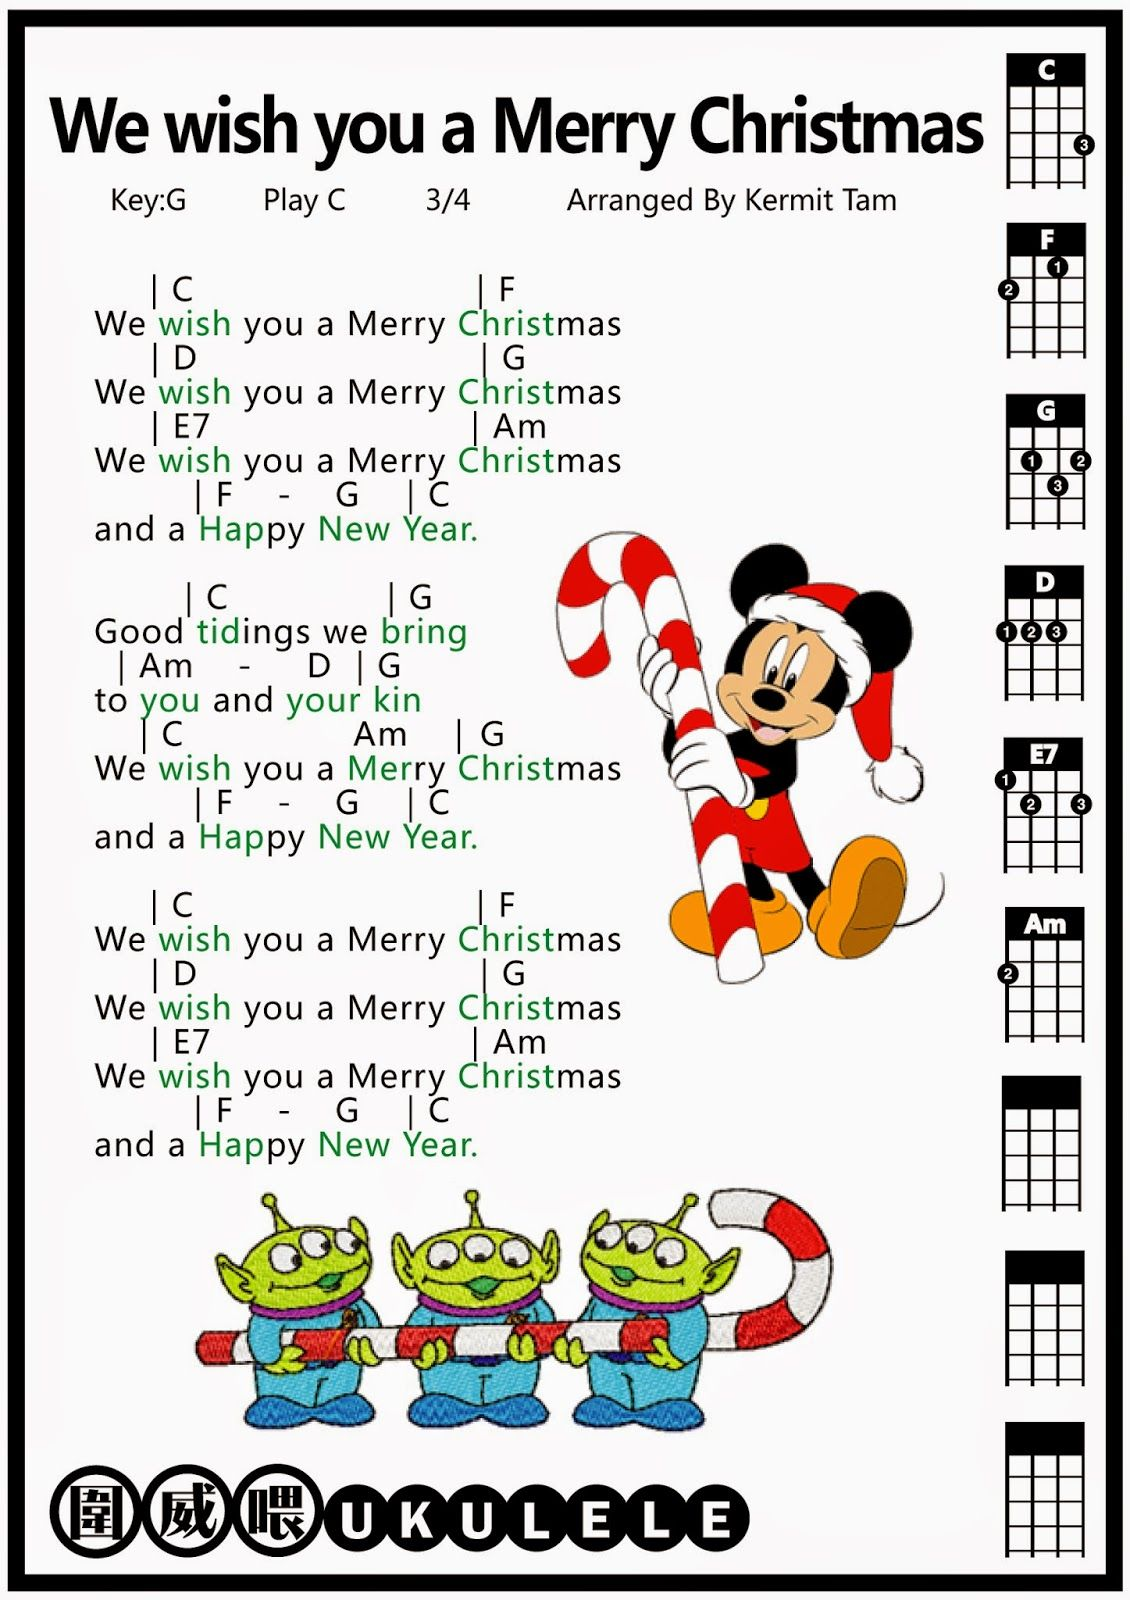 圍威喂 ukulele: We wish you a Merry Christmas [ukulele tab] | Musik ...